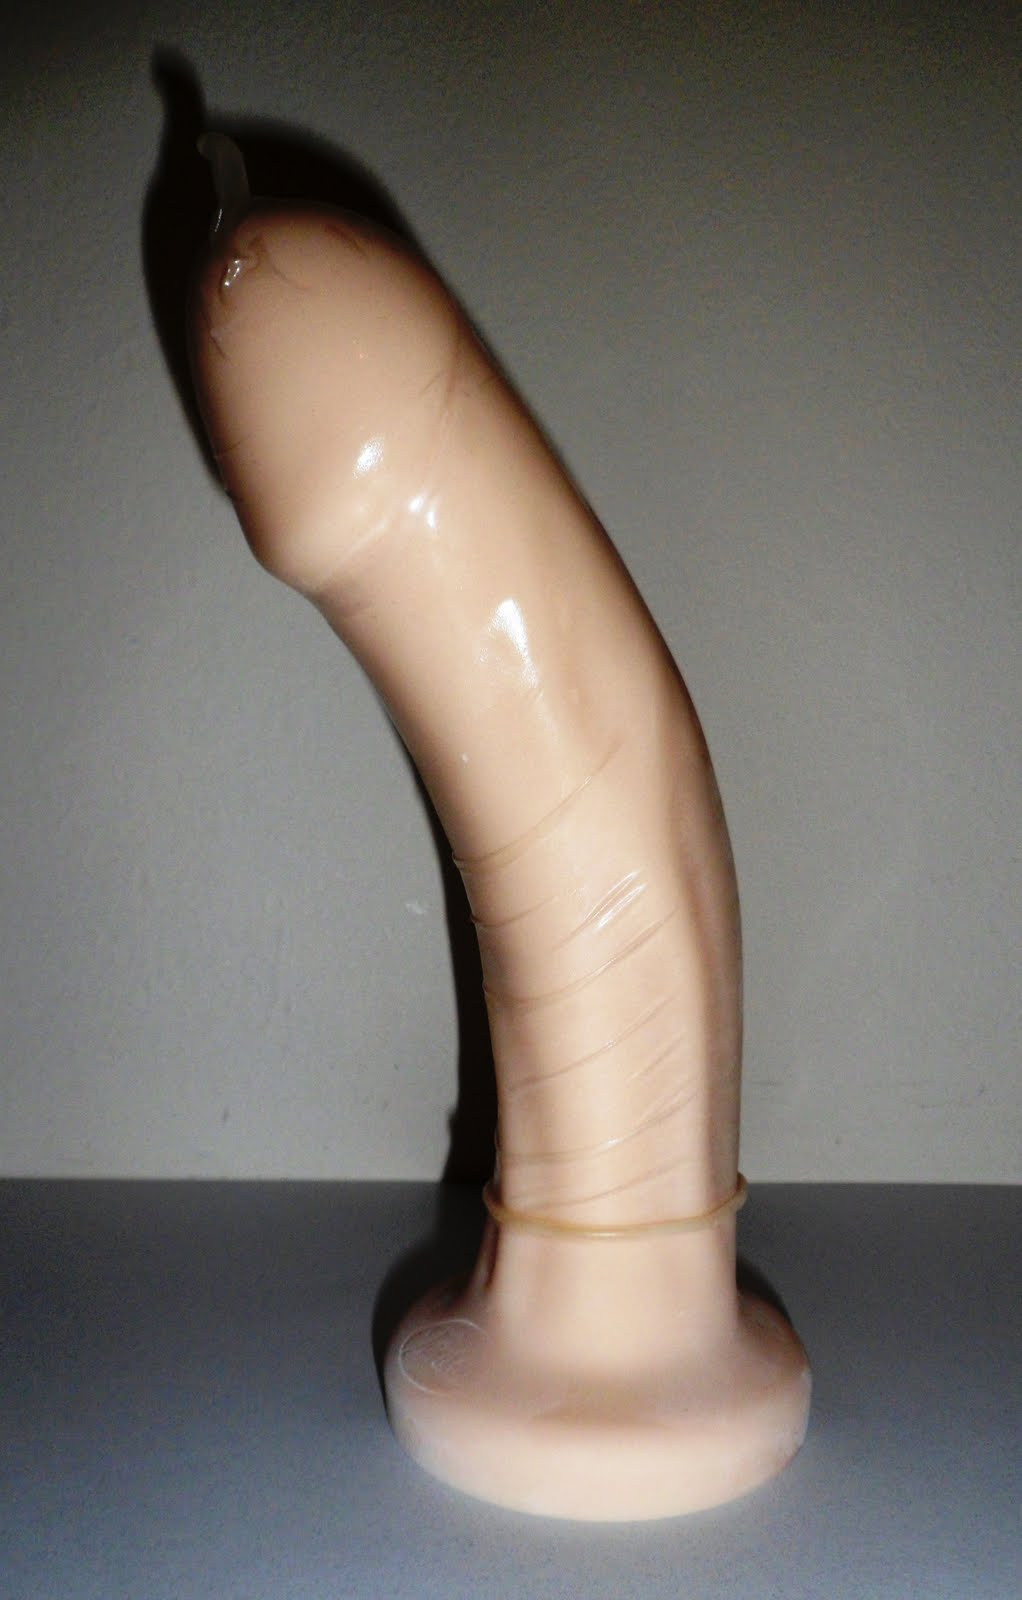 Authoritative point sex toys made from condoms yes consider